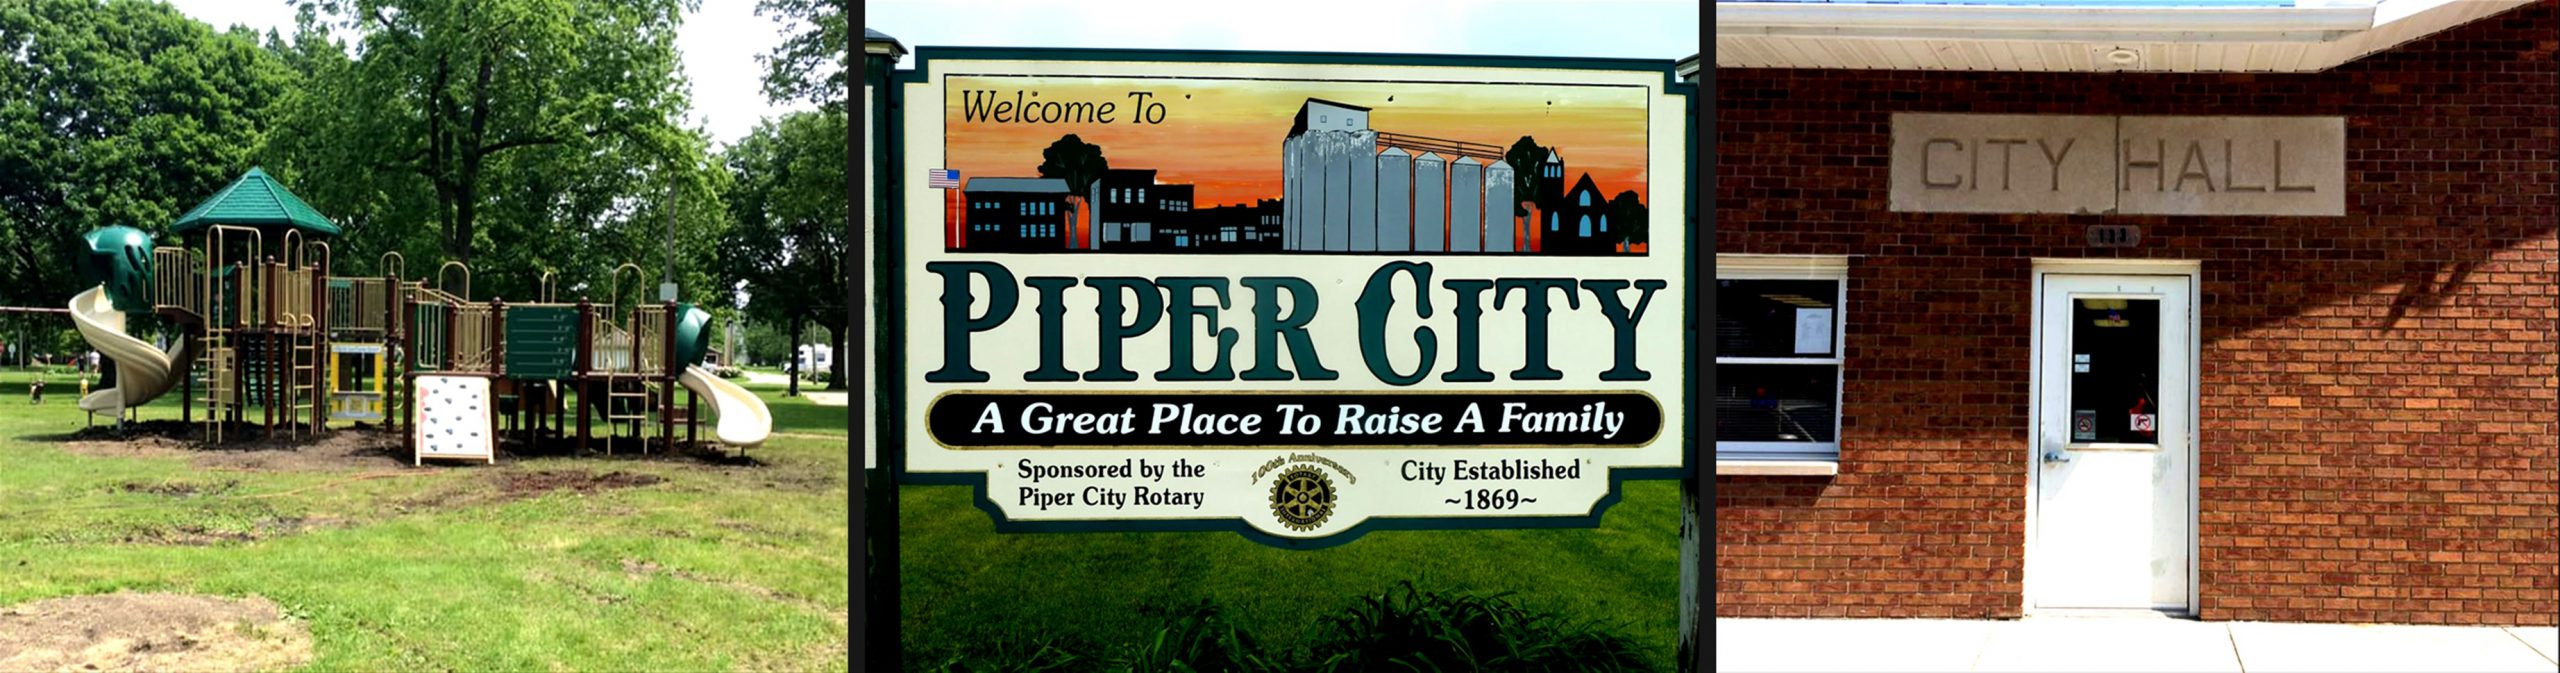 Piper City Illinois Attractions: Park Playground, Welcome to Piper City Sign, City Hall Building